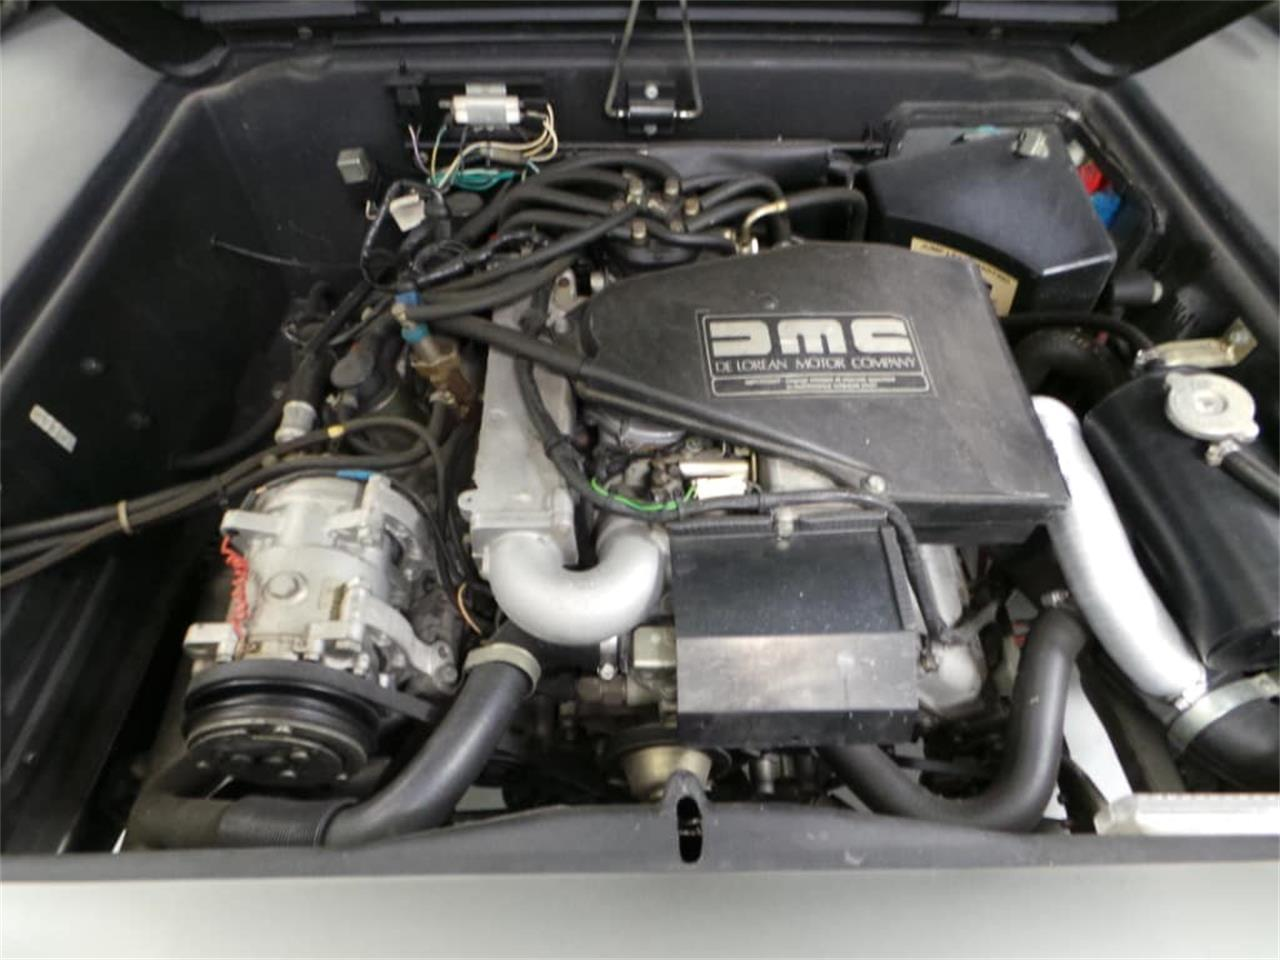 Large Picture of '81 DeLorean DMC-12 - $42,000.00 - JLCI